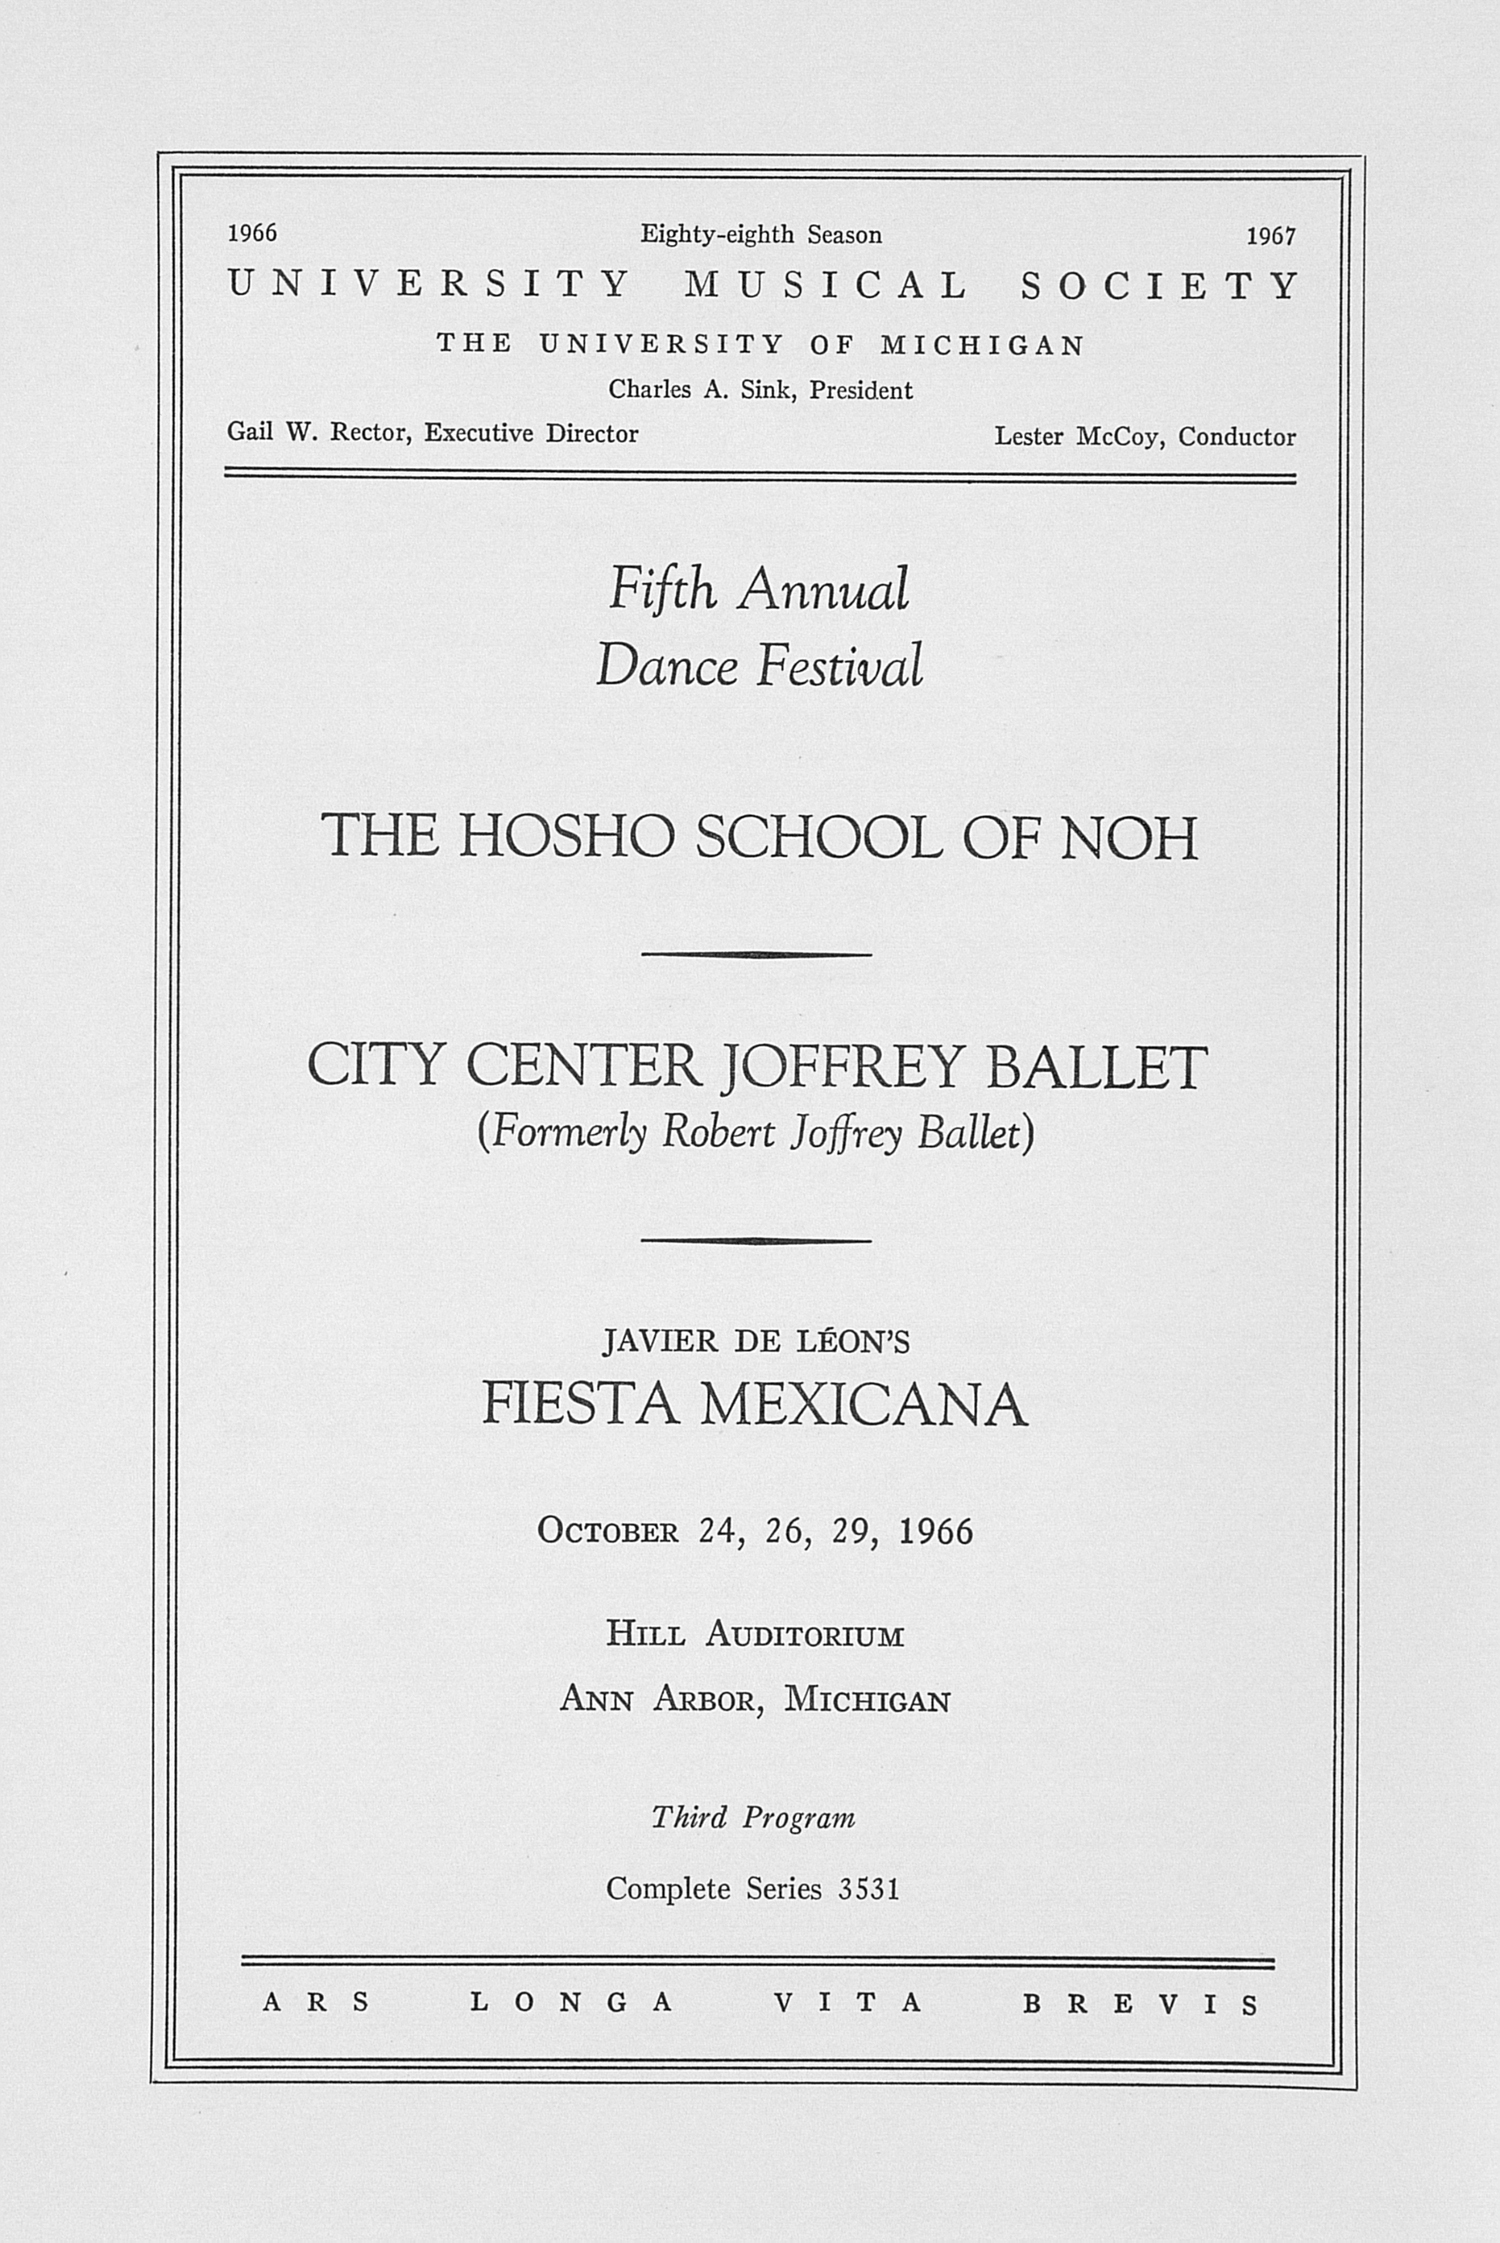 UMS Concert Program, October 24, 26, 29, 1966: The Hosho School Of Noh --  image